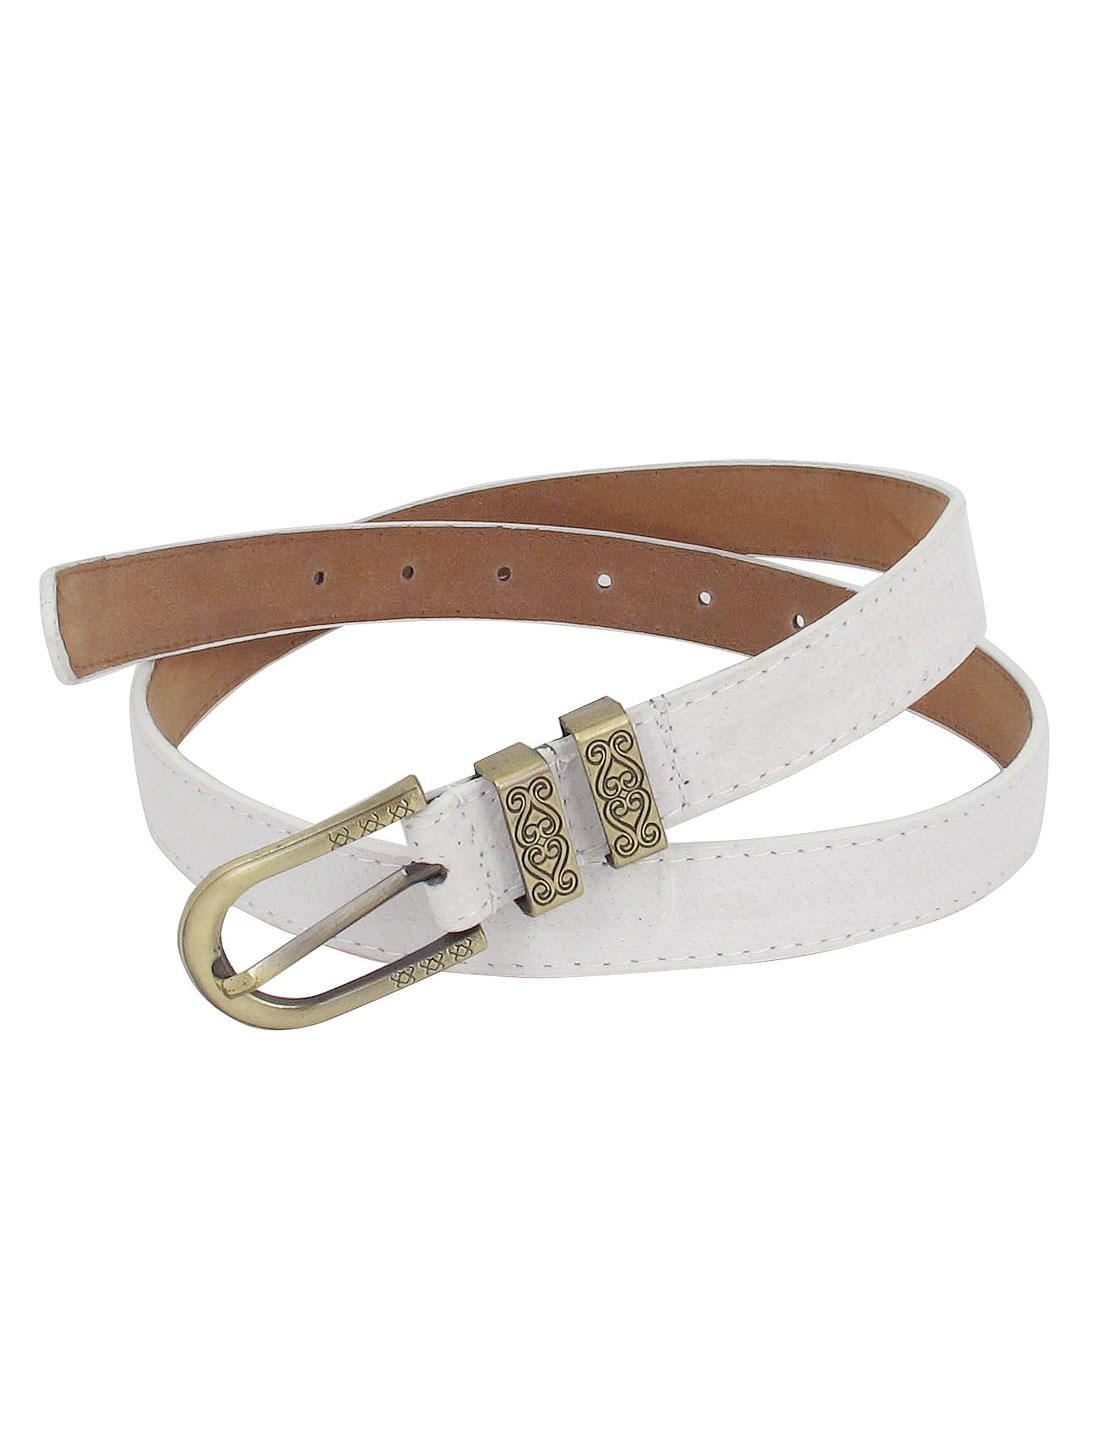 Flower Carved Metal Single Pin Buckle Faux Leather Perforated 5 Holes Adjustable 2.5cm Width Waist Belt White